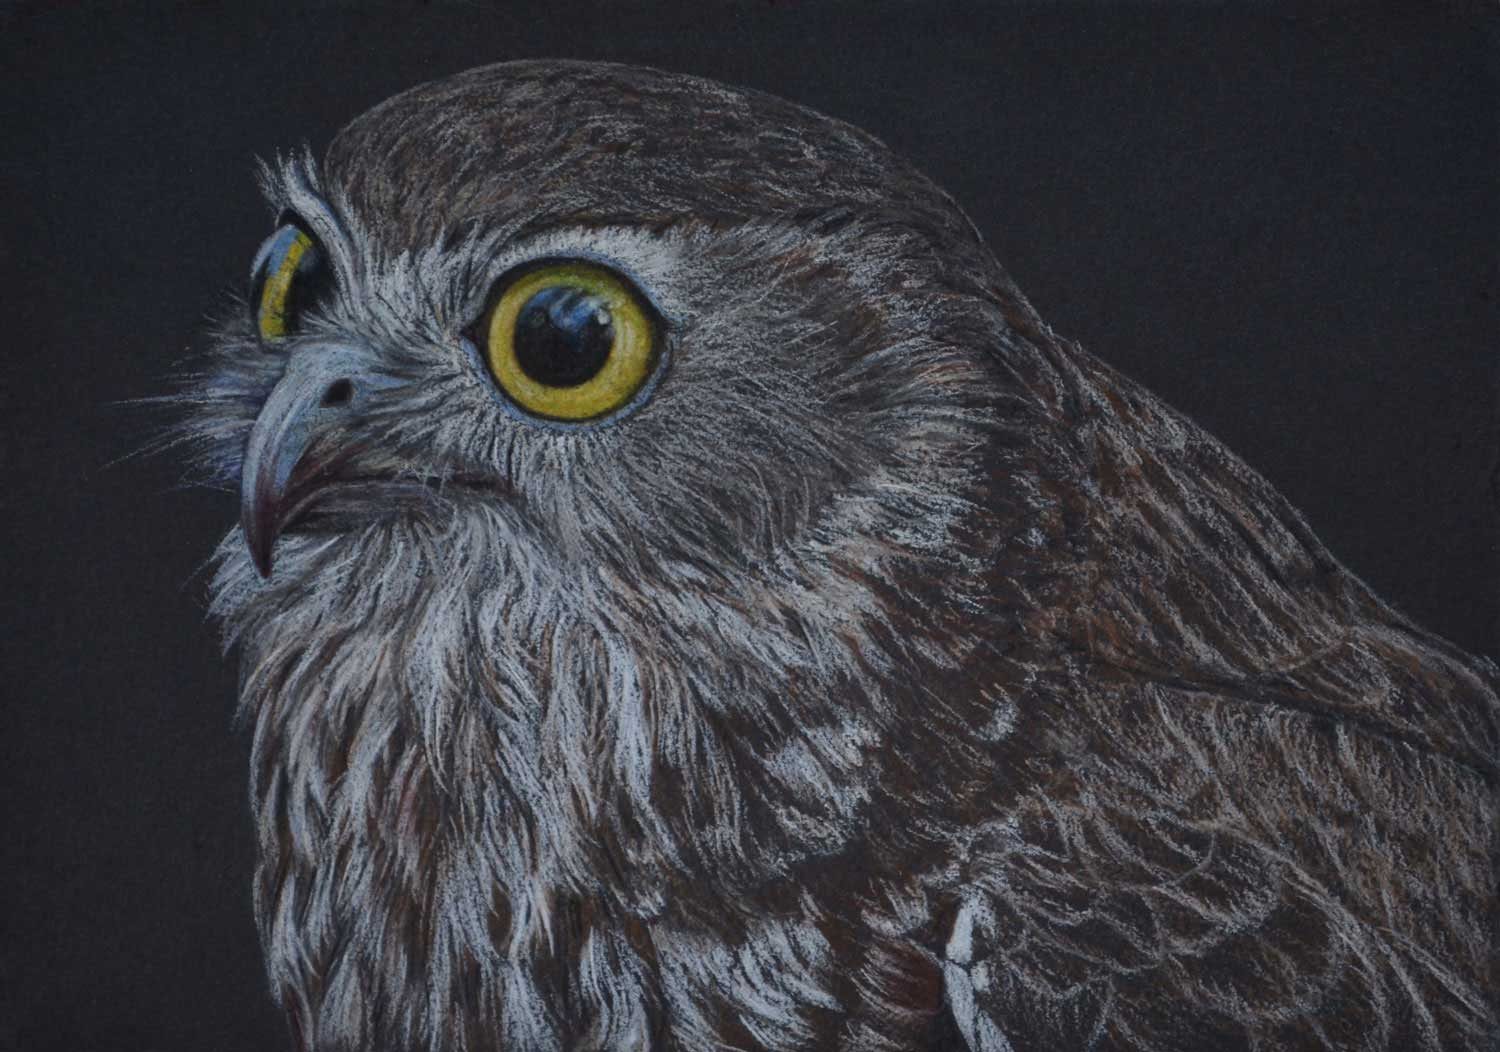 Boobook Owl  26 x 37 cm , Pastel Drawing on handmade paper  Available as a limited edition print  $650